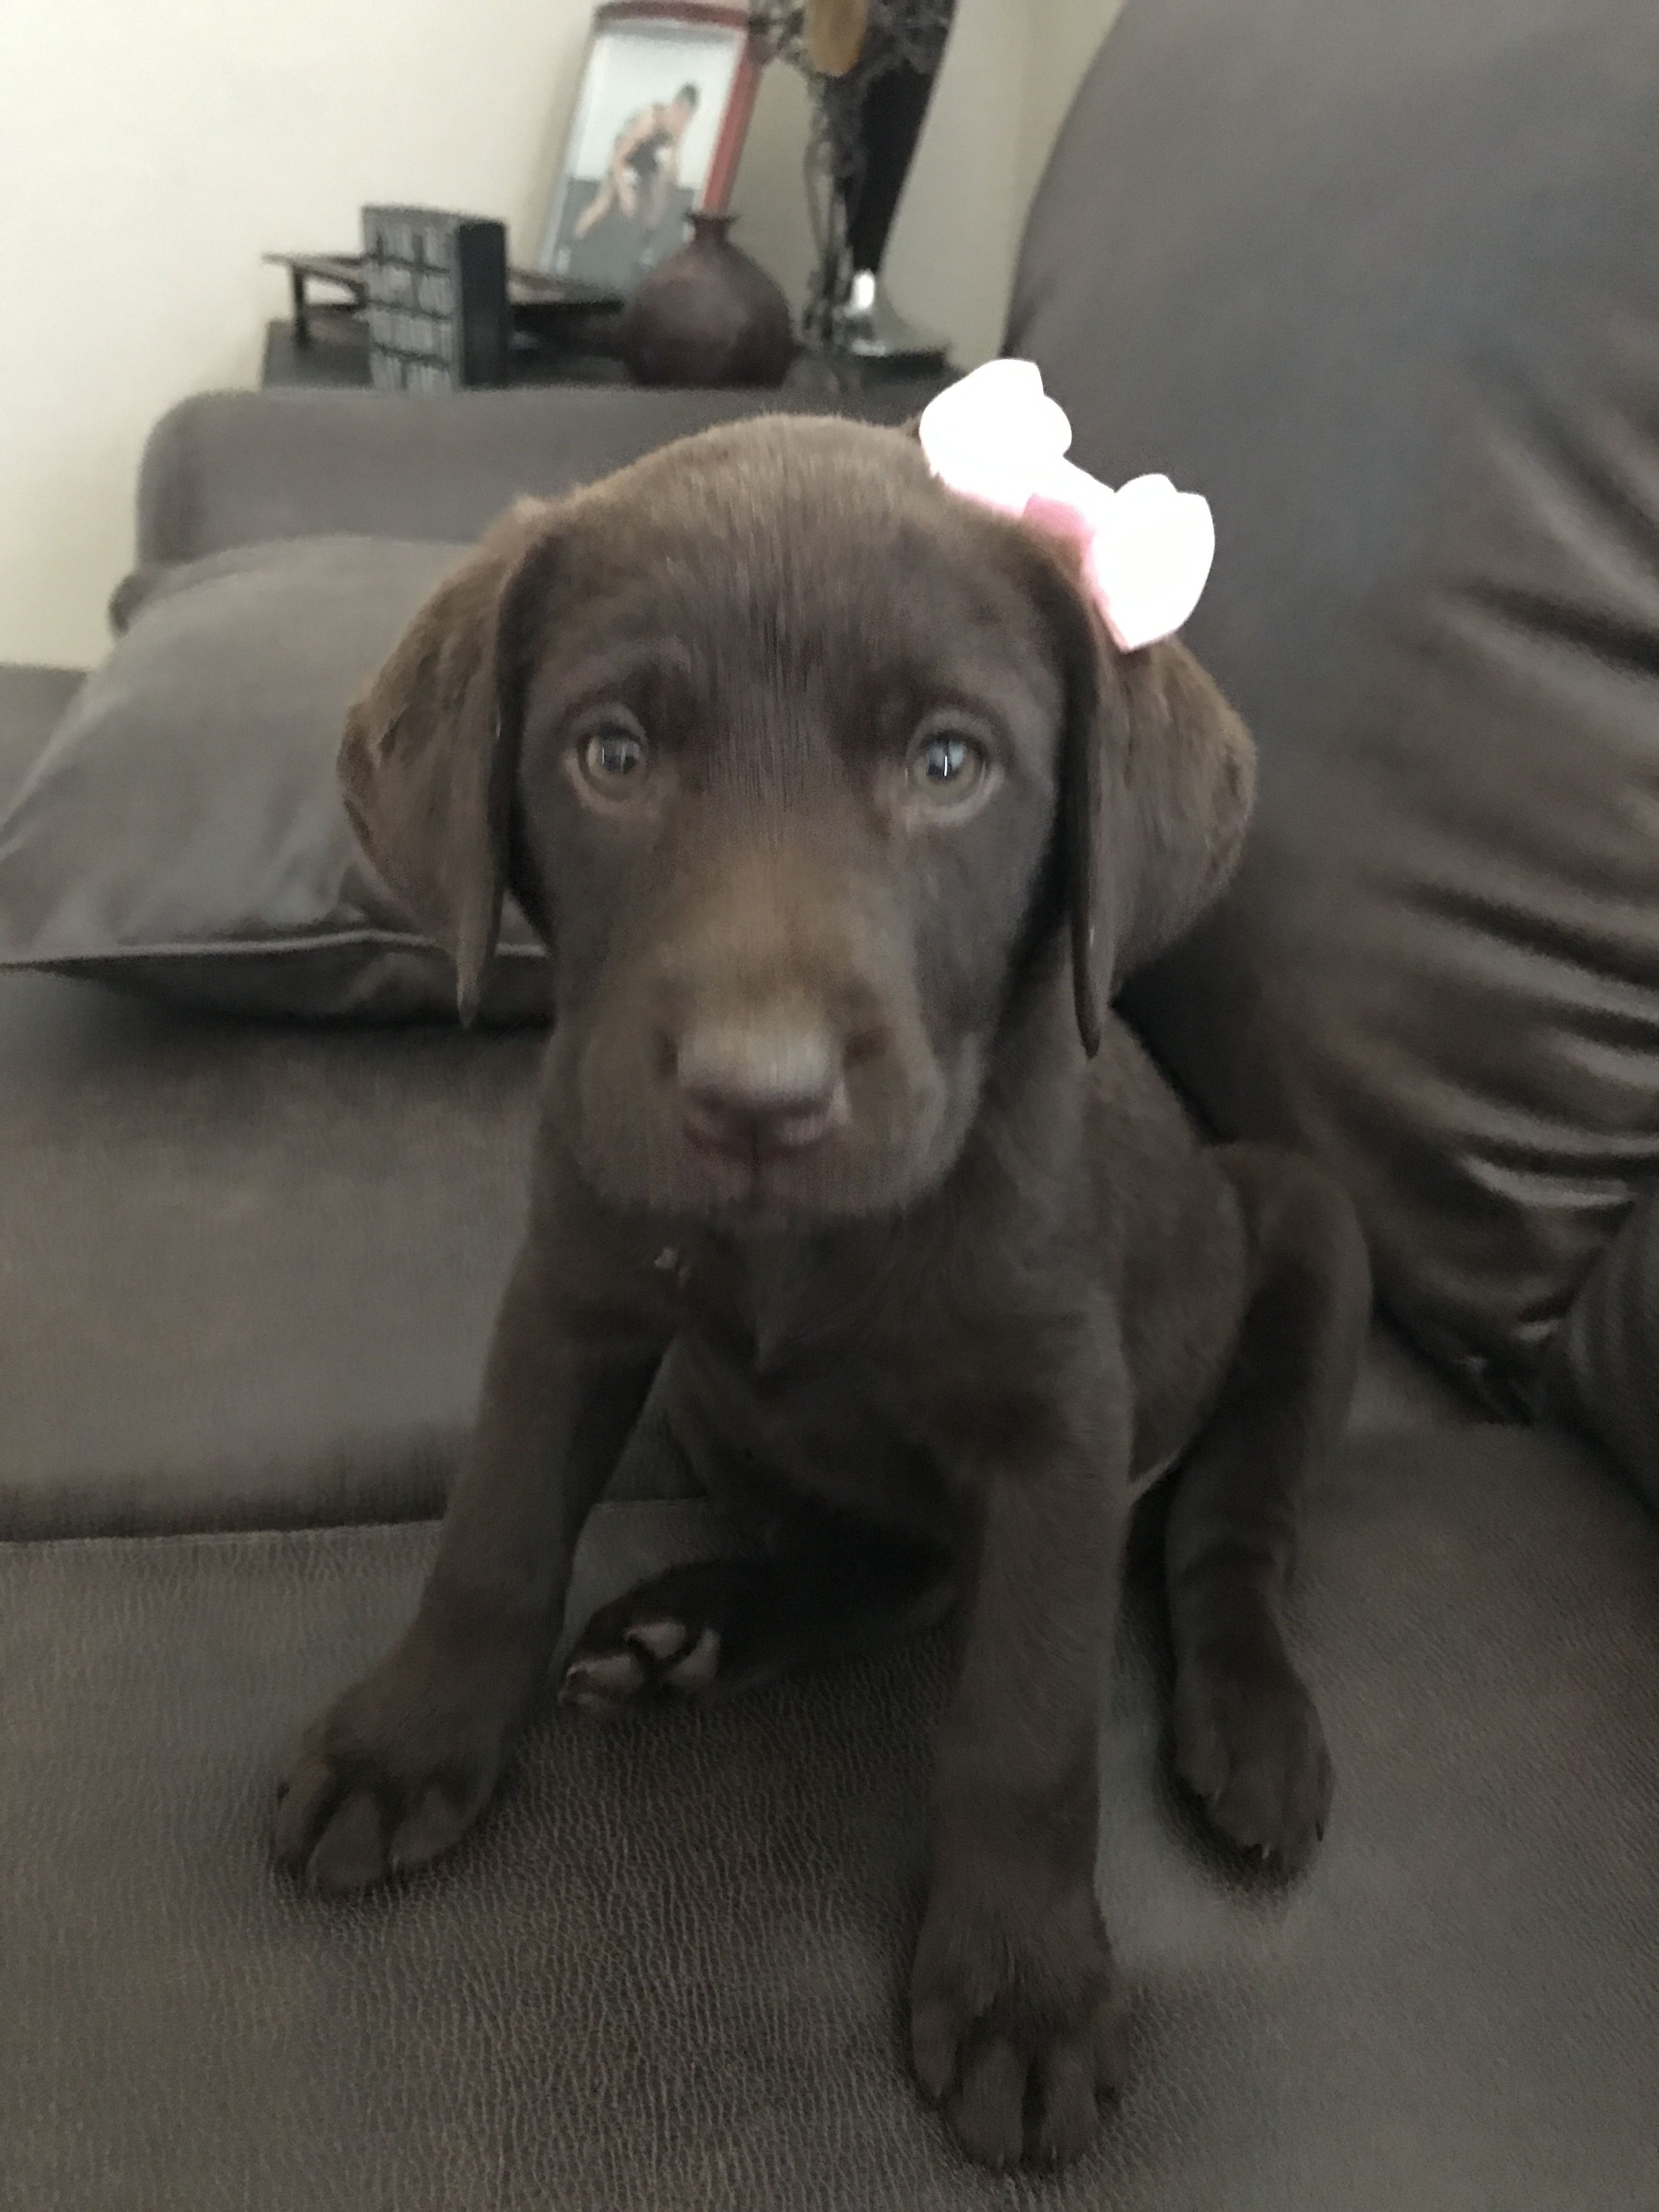 Chocolate Lab Puppy Her Name Is June Bug She Is 8 Weeks Old Chocolate Lab Puppies Puppies Doggy